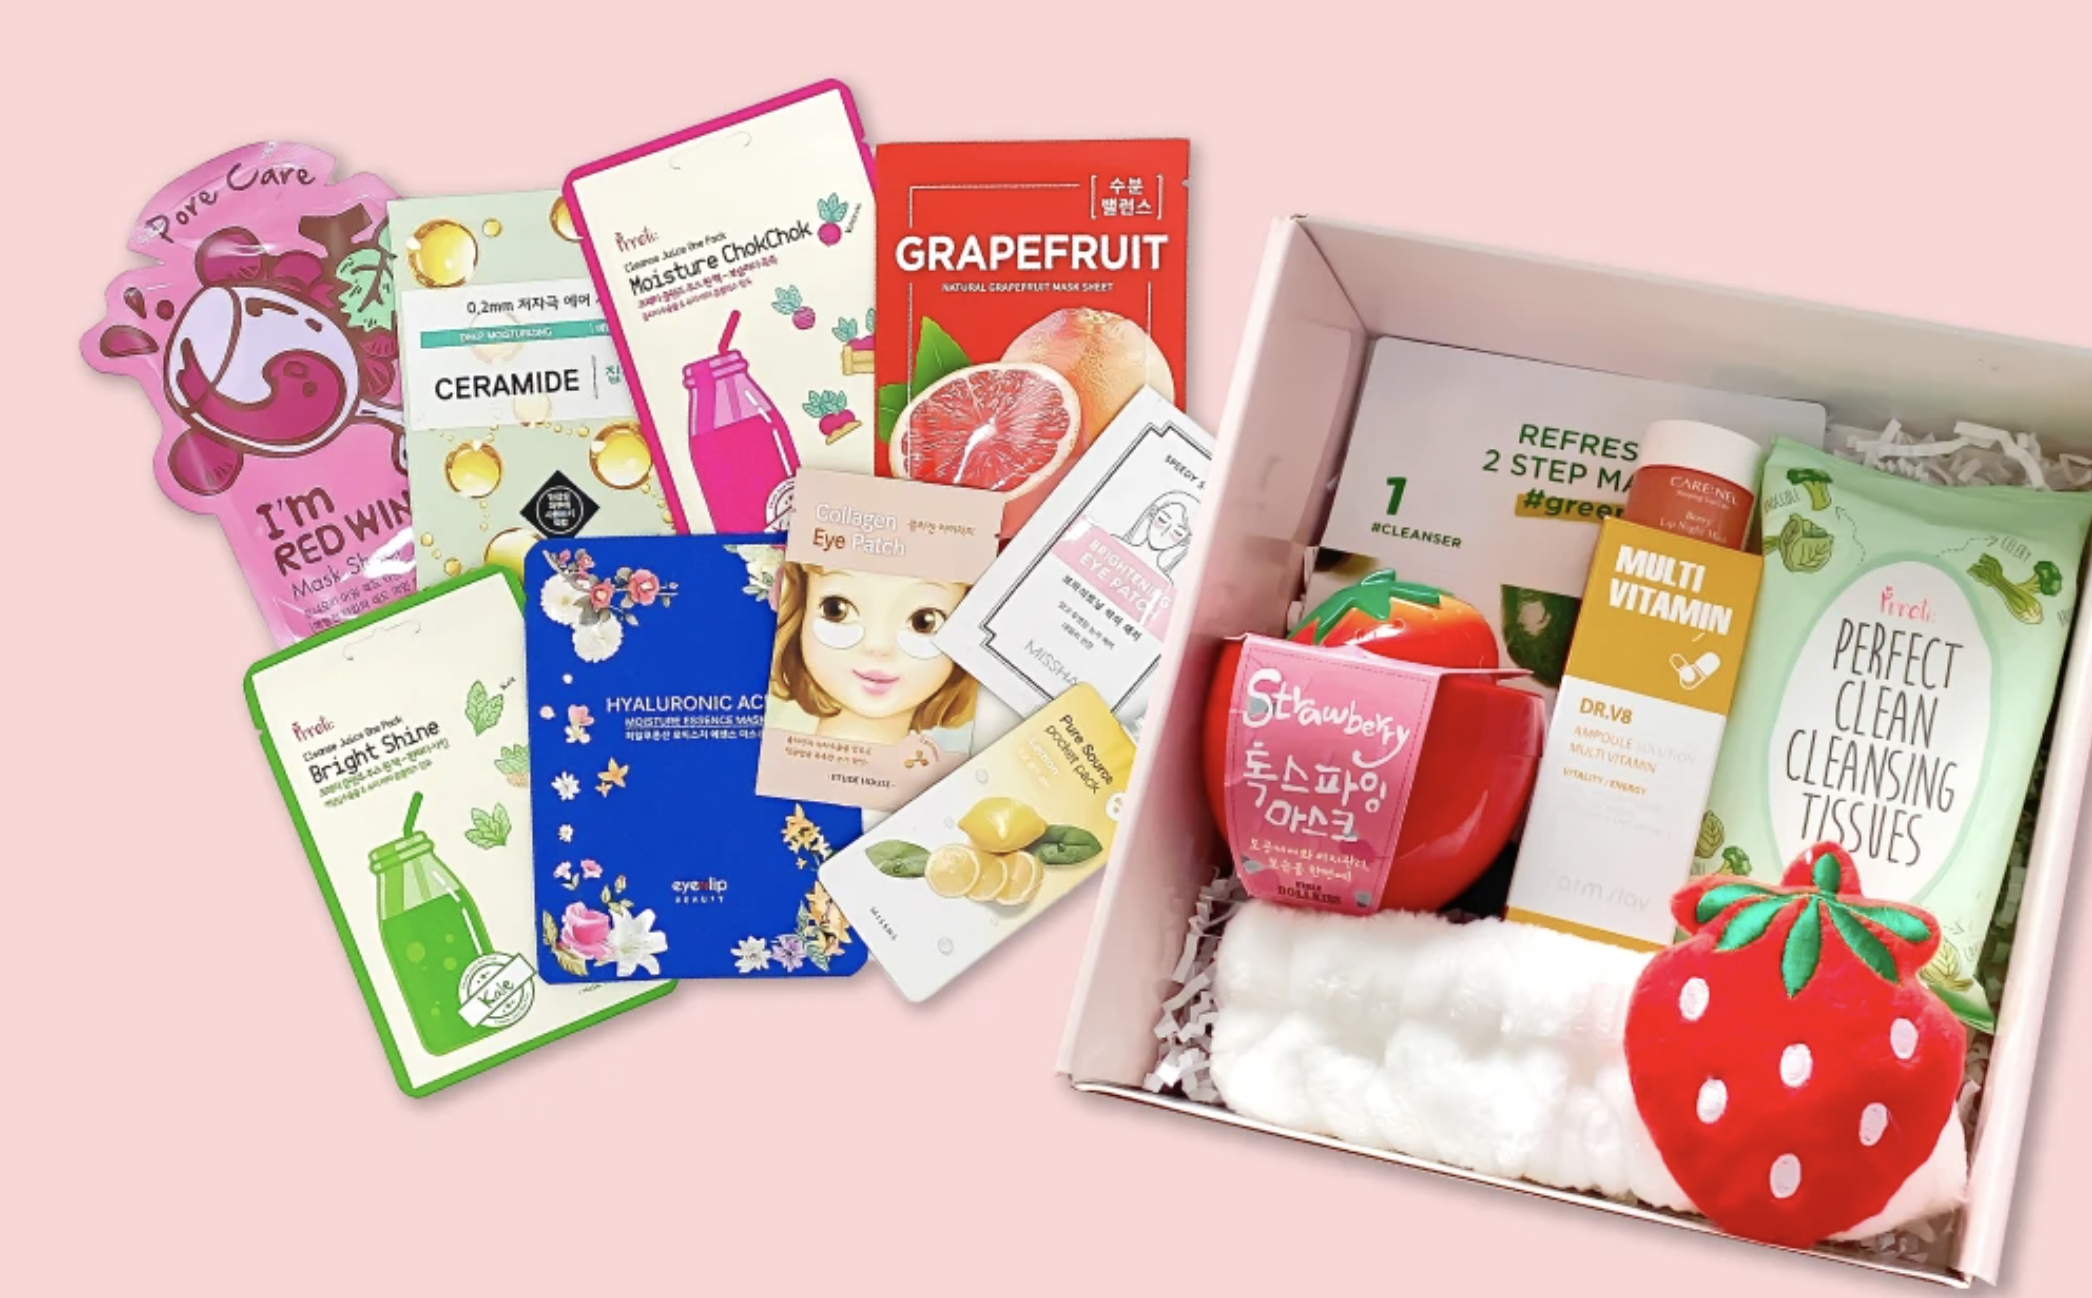 A collection of Korean skincare packages against a pink background